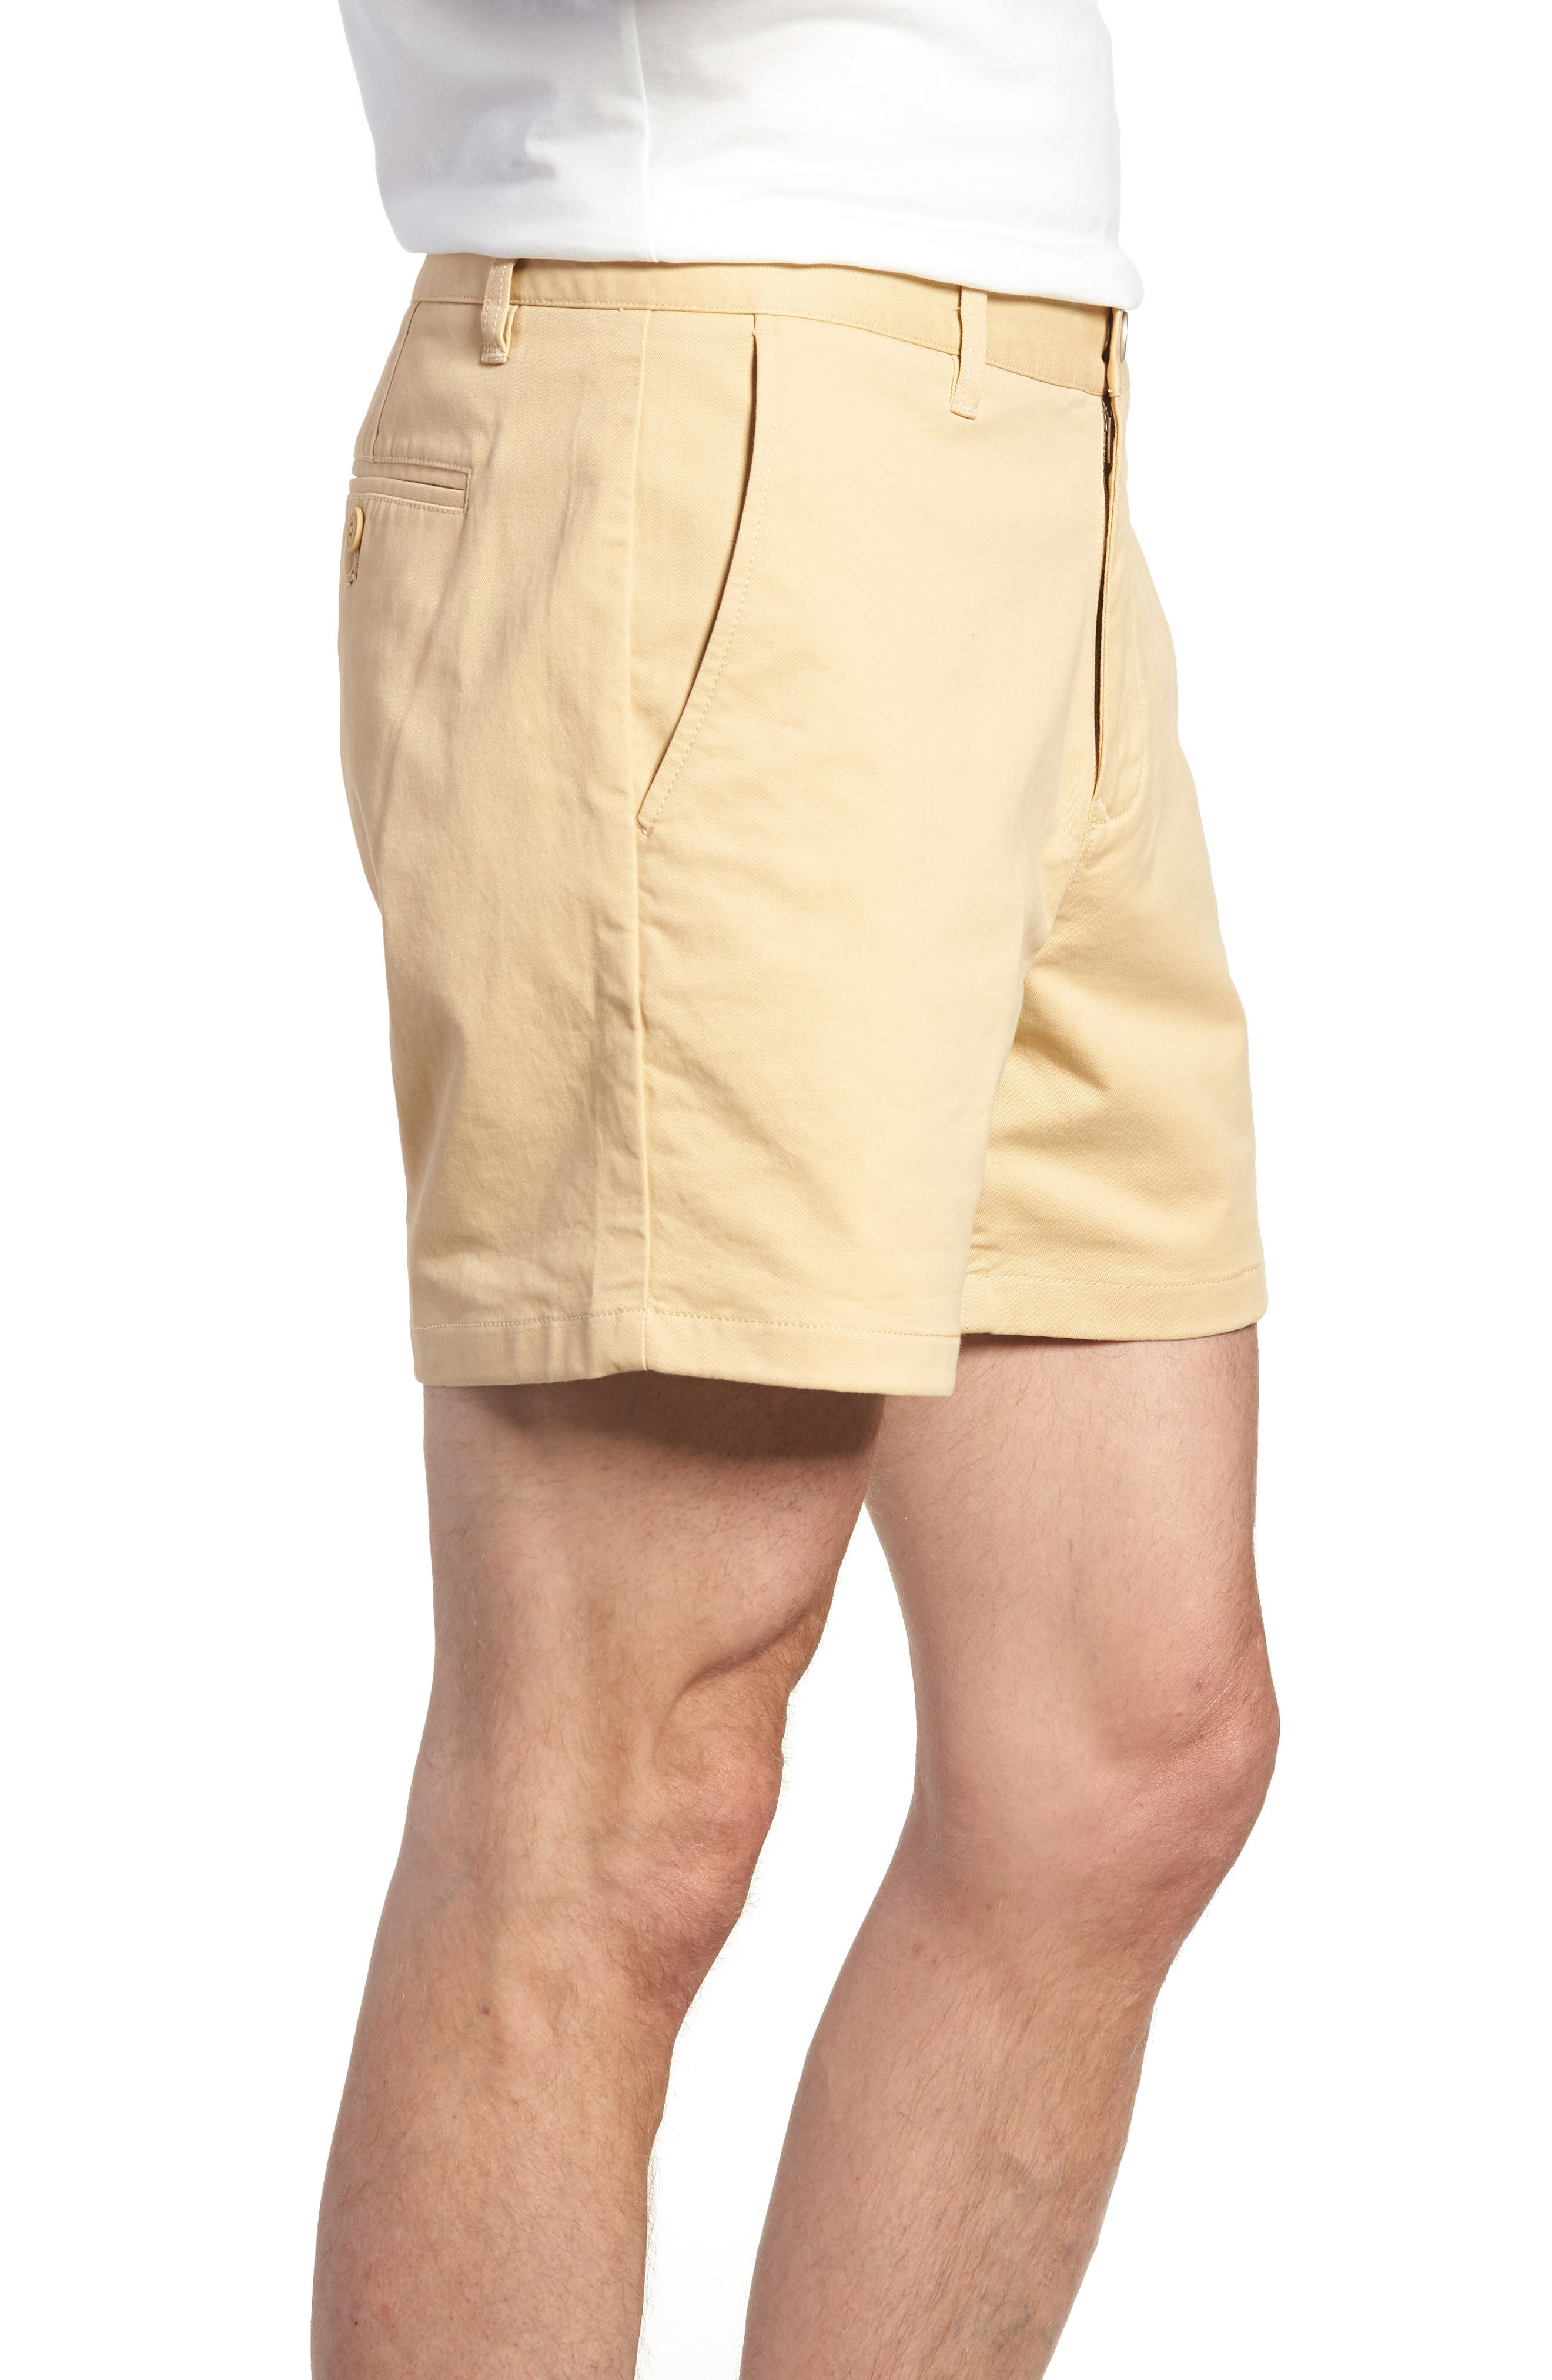 Stretch Washed Chino 5-Inch Shorts,                             Alternate thumbnail 3, color,                             Gold Khaki